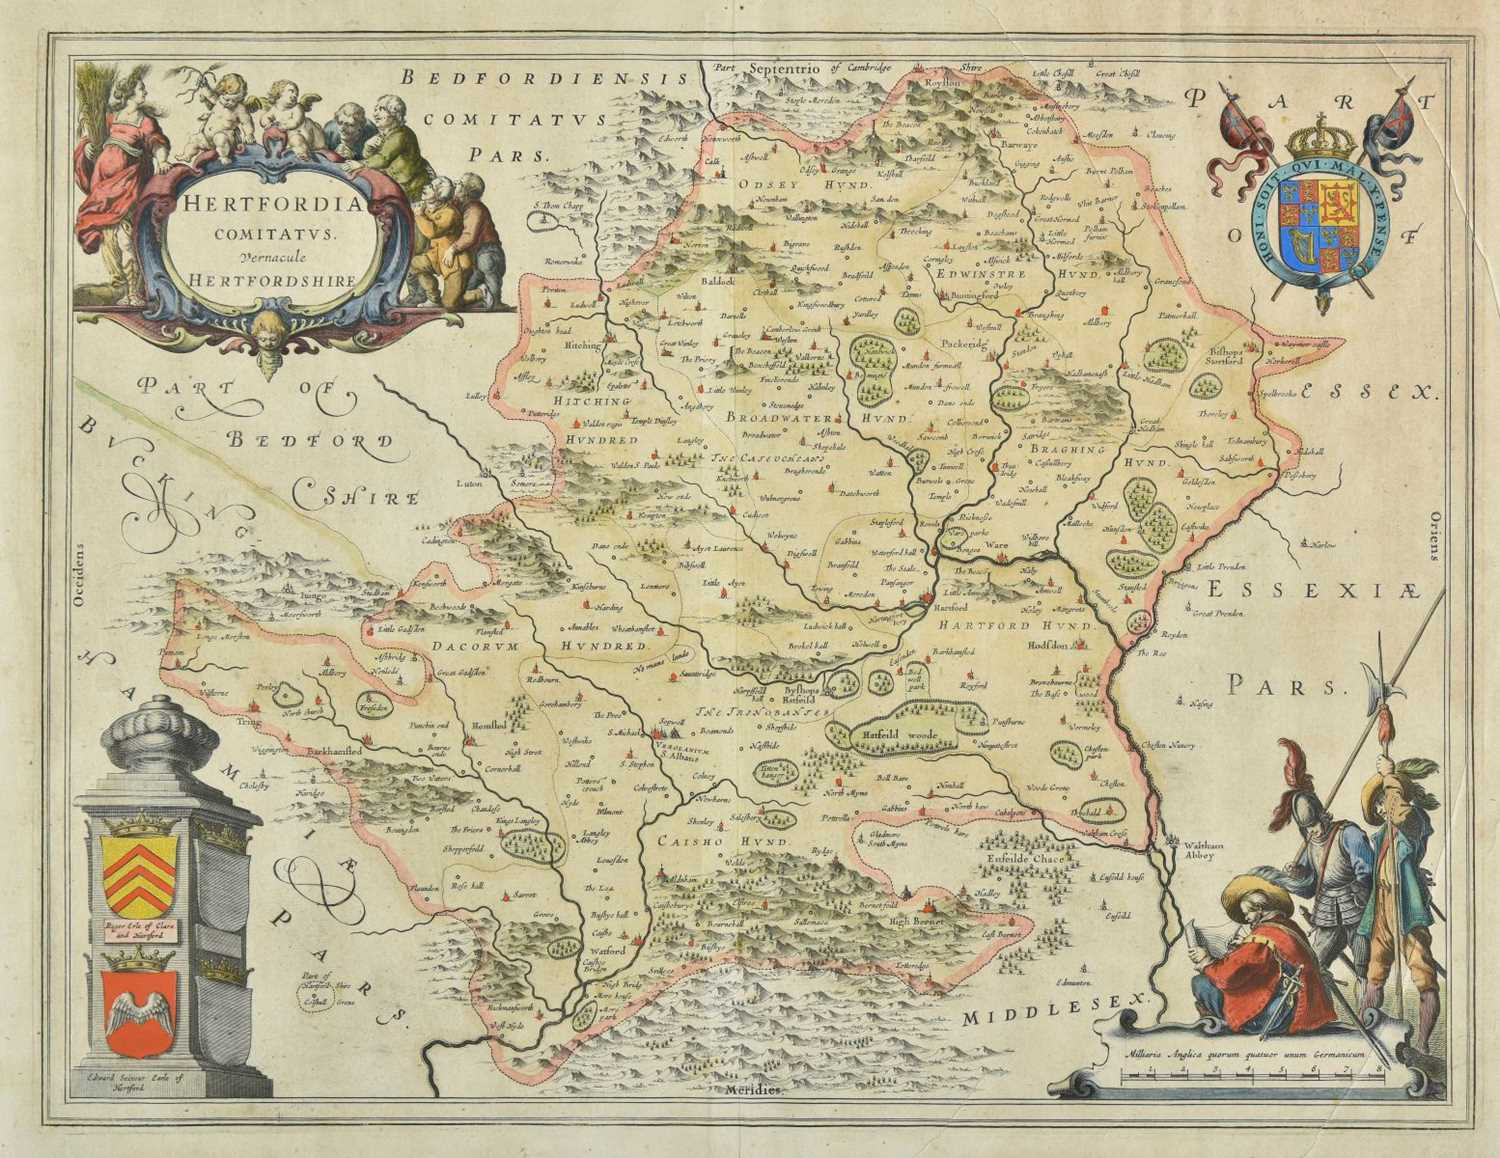 Lot 48-Hertfordshire. Four engraved maps, 17th - 19th century